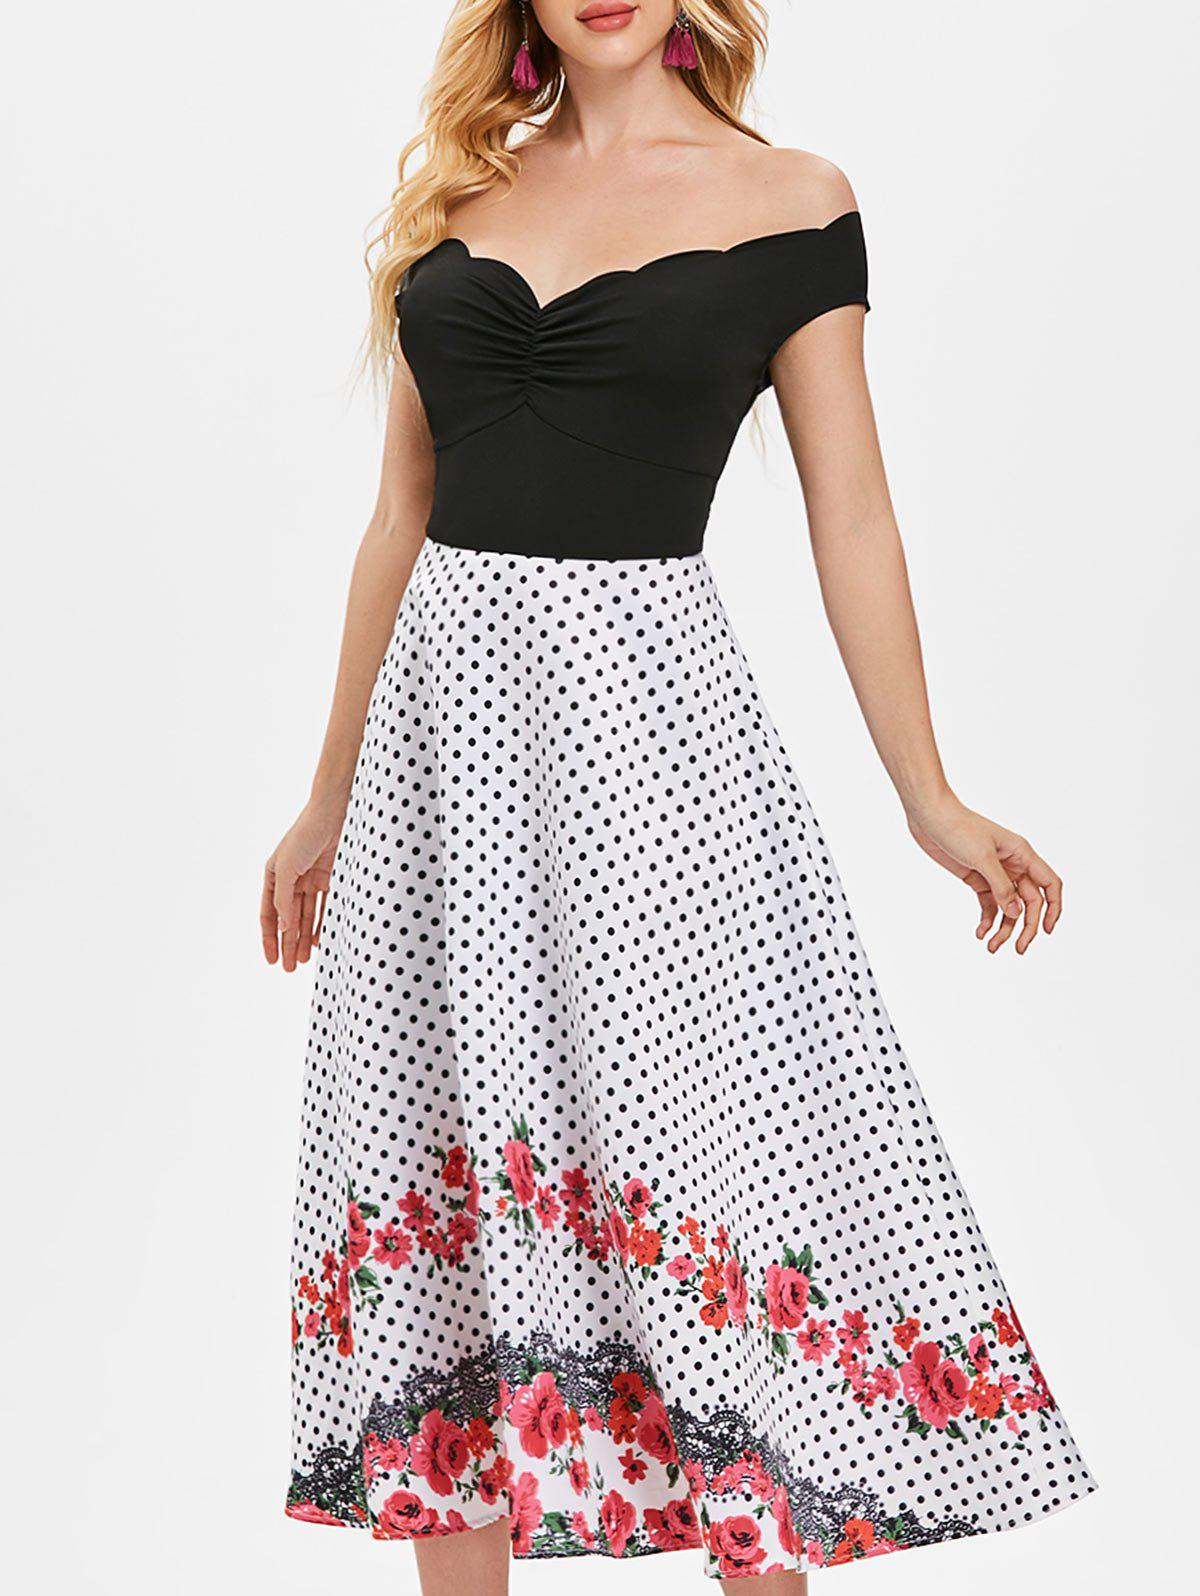 Fashion Polka Dot Floral Trim High Waist Dress